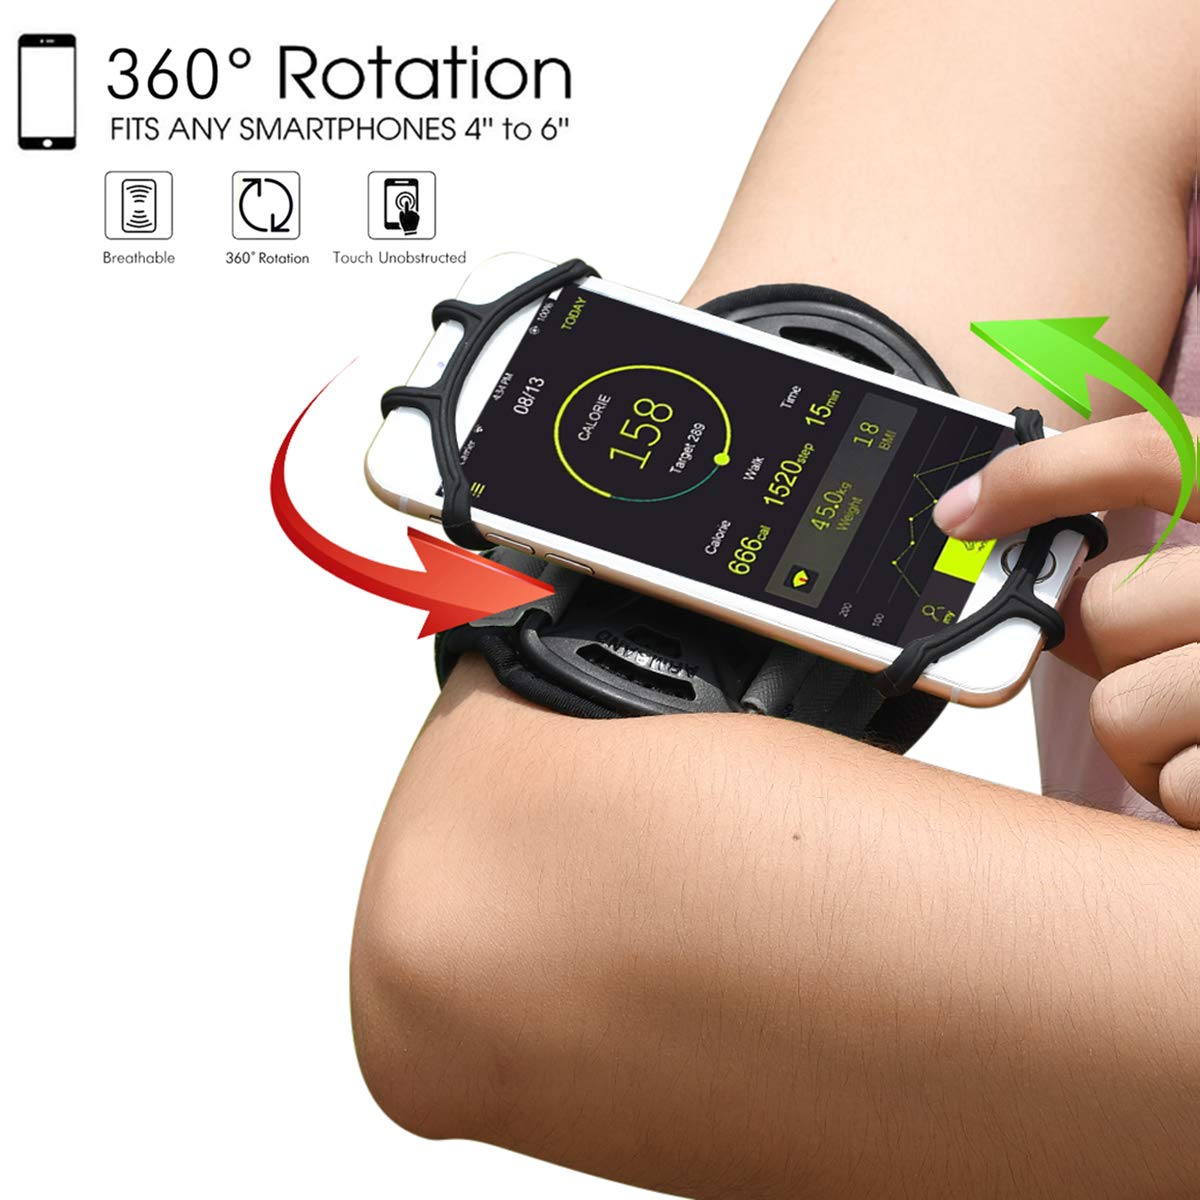 best service 53ab0 1e3d7 Sports Running Armband case for iPhone Xs/XS Max/XR/X/8/8 Plus/7  Plus/7/6S,Samsung Galaxy Note 9/8/S9 Plus/S8/S7/S6 Edge&4''-6.5''Phone,360  Rotable ...